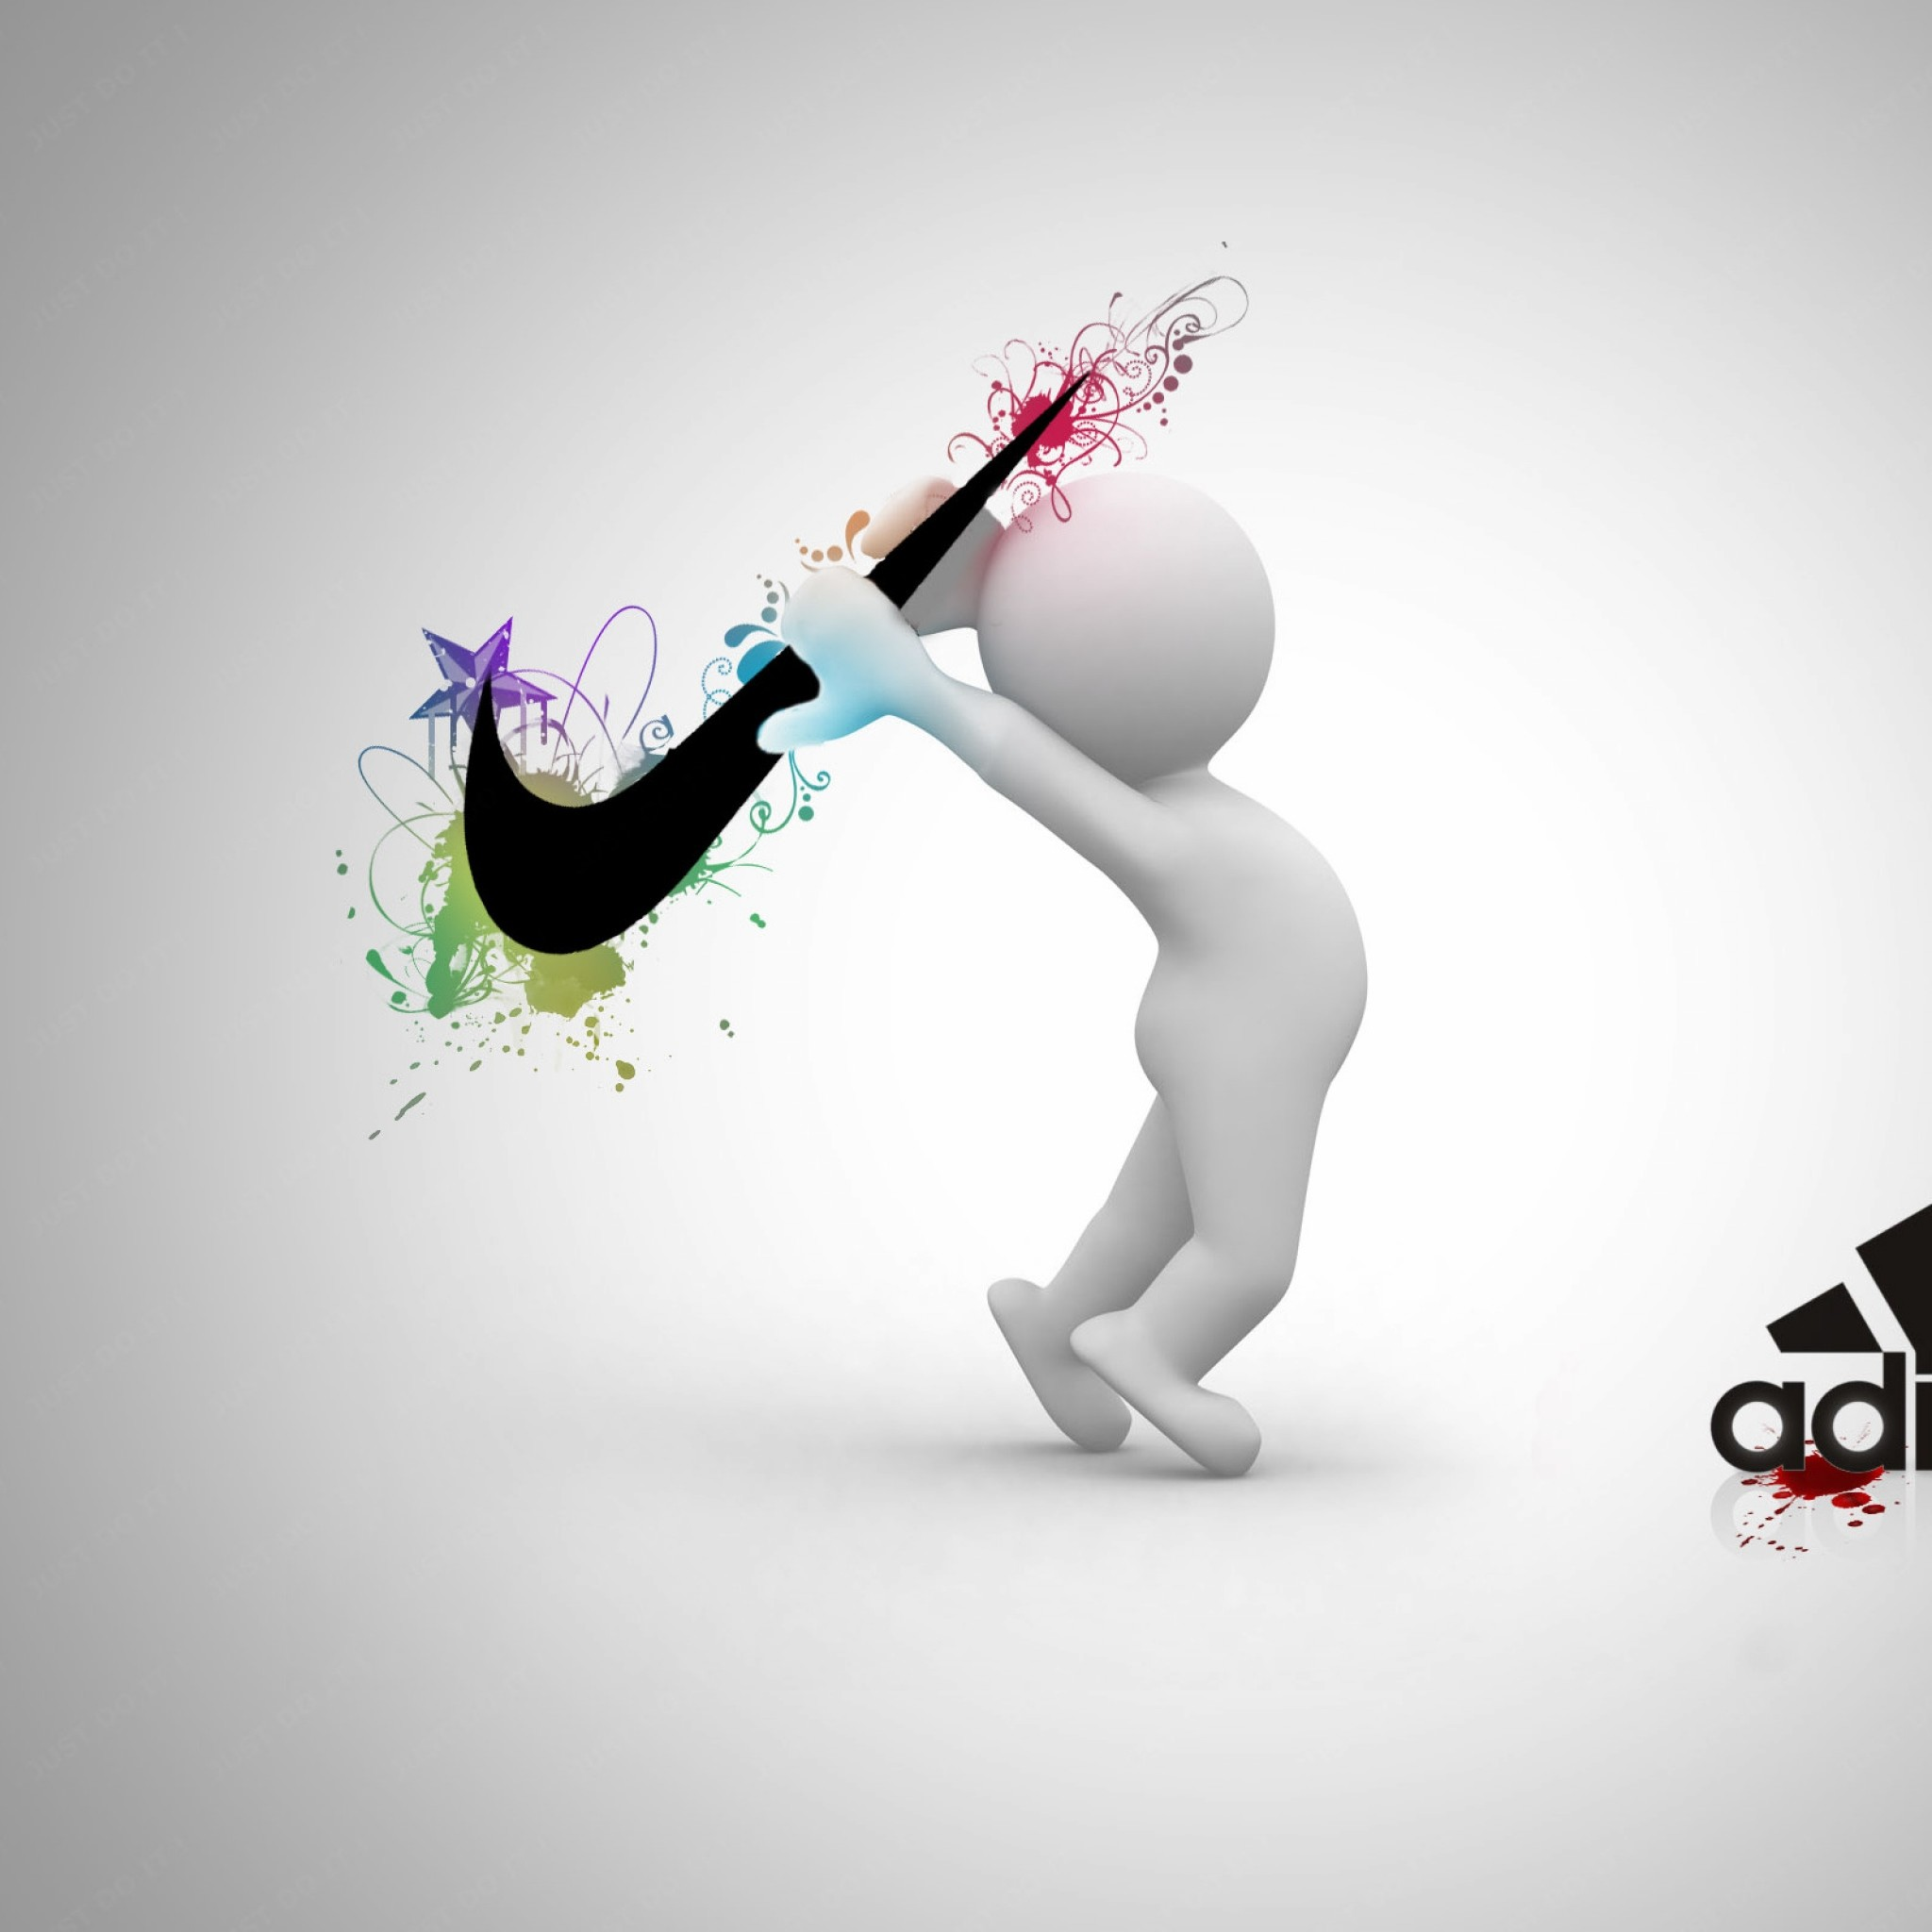 Nike desktop wallpapers 70 images - Nike wallpaper hd ...